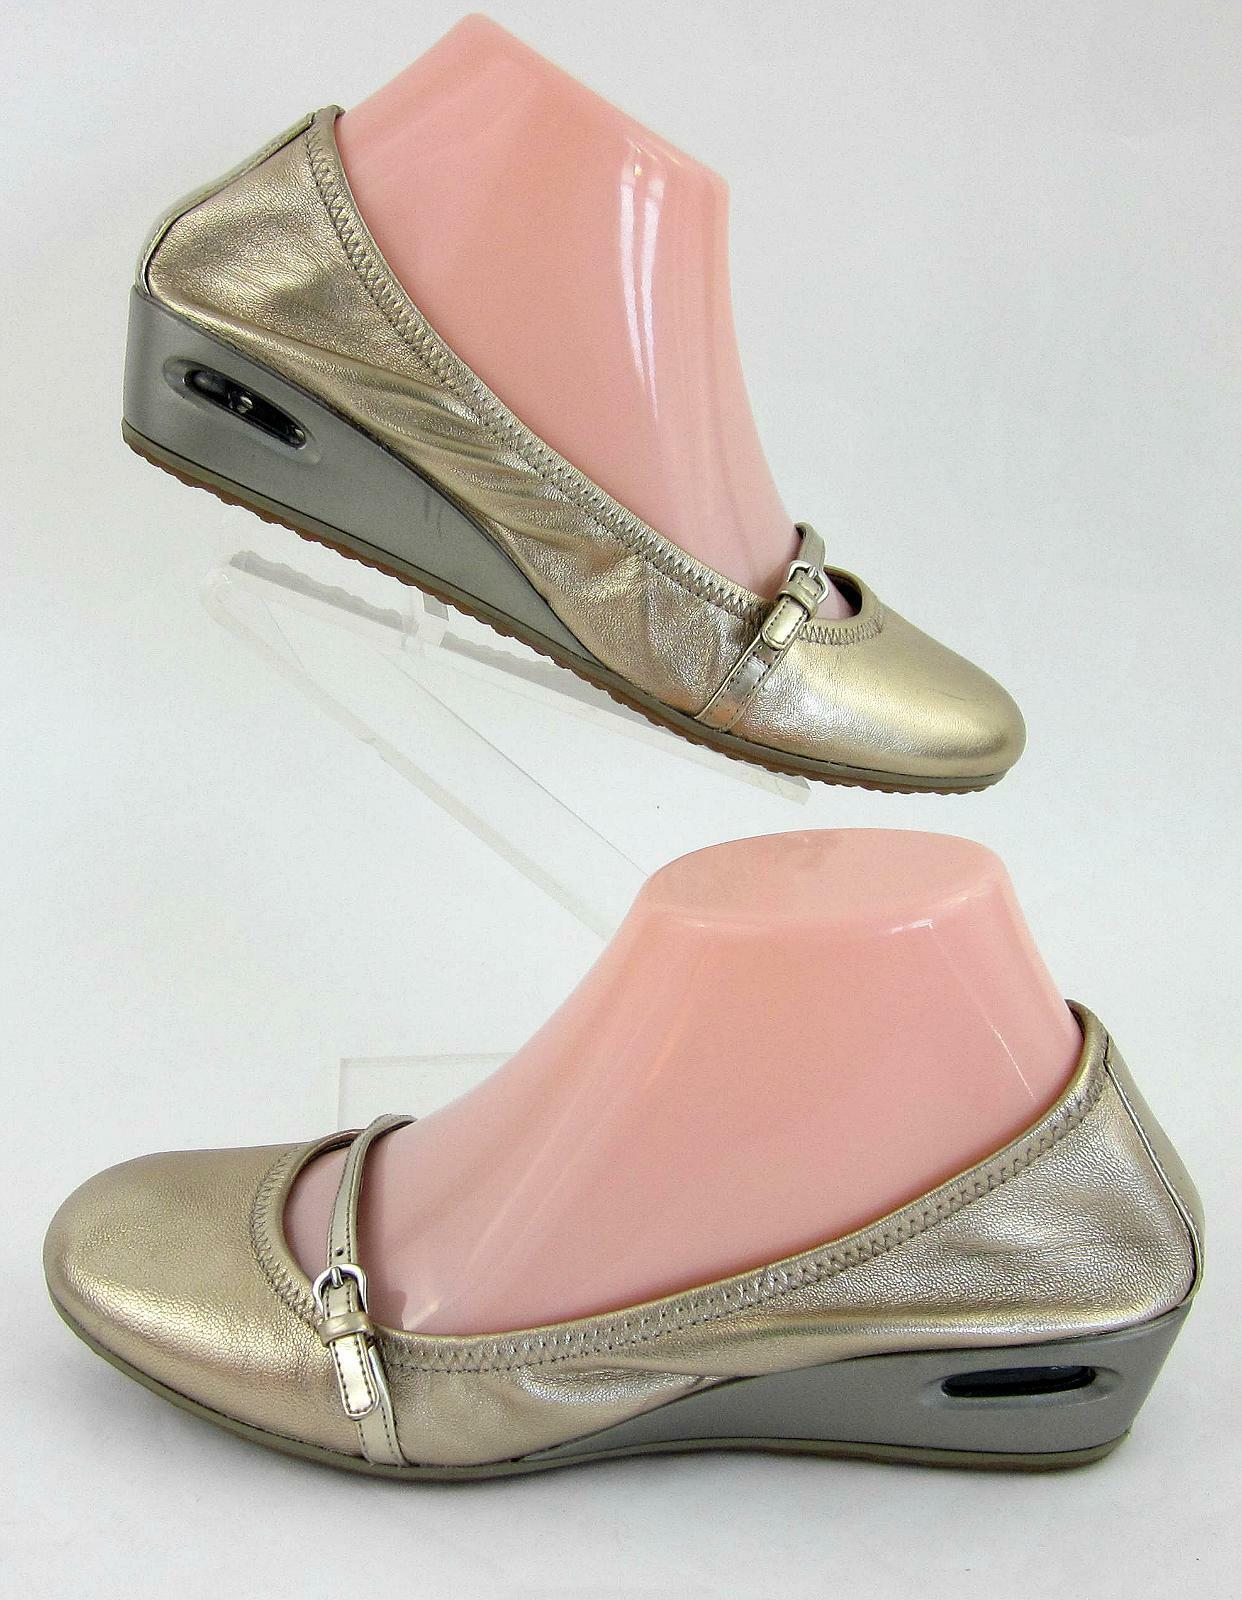 Cole Gold Haan Air Ballet Style Mary Jane Wedges Gold Cole Pelle Sz 7B f1d2e7